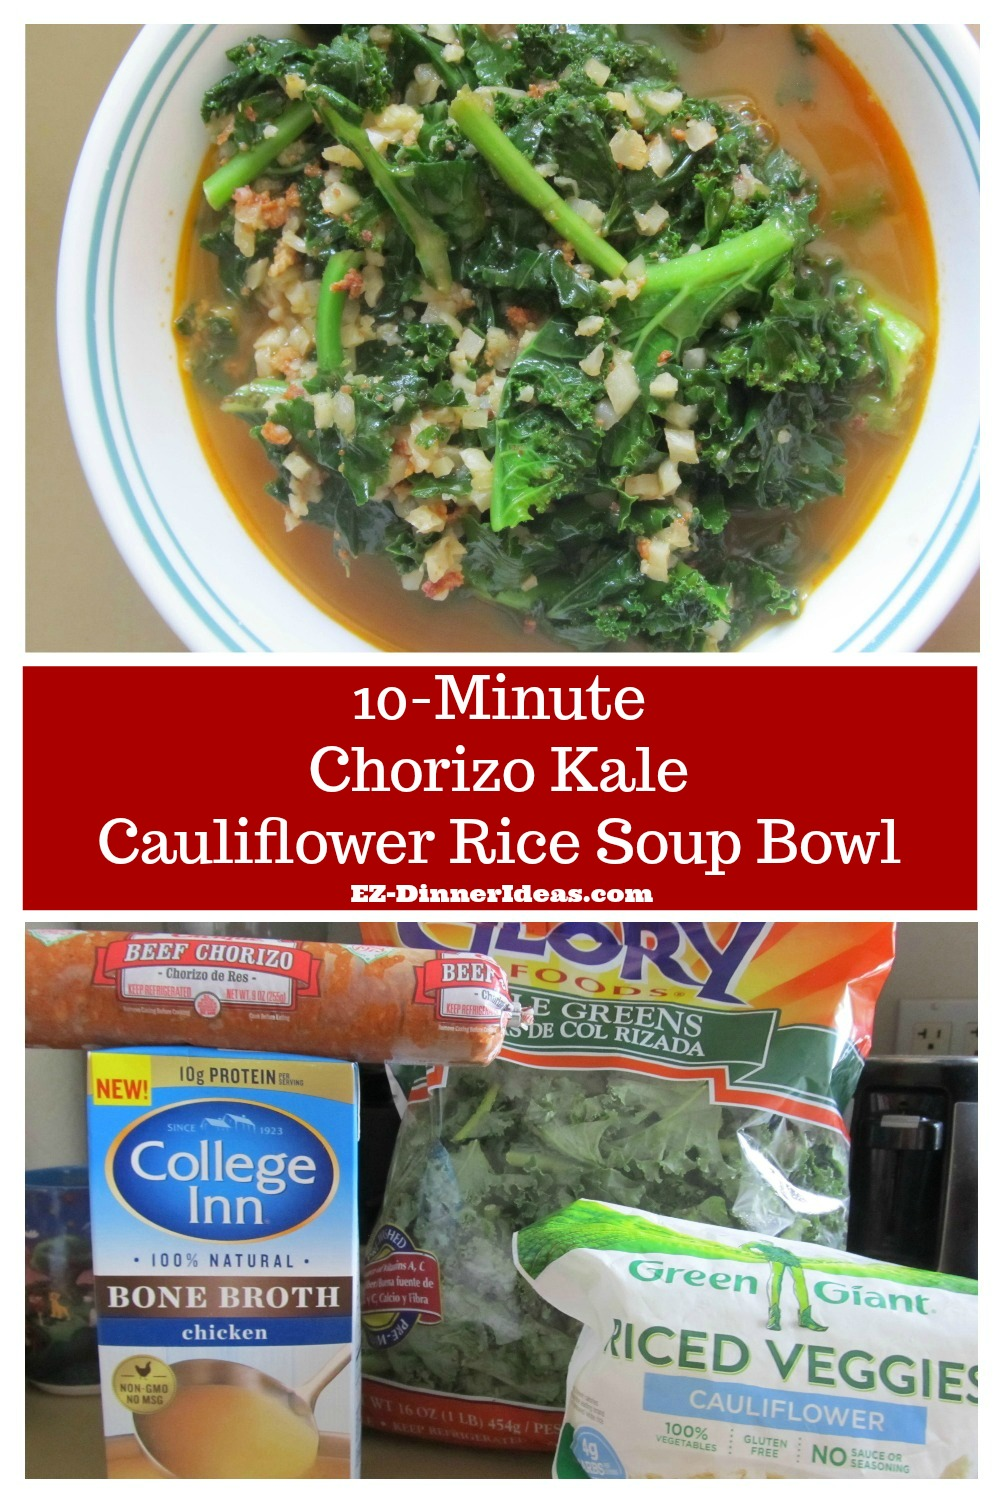 Sausage Kale Soup Recipe | 10-Minute Chorizo Kale Cauliflower Rice Soup Bowl